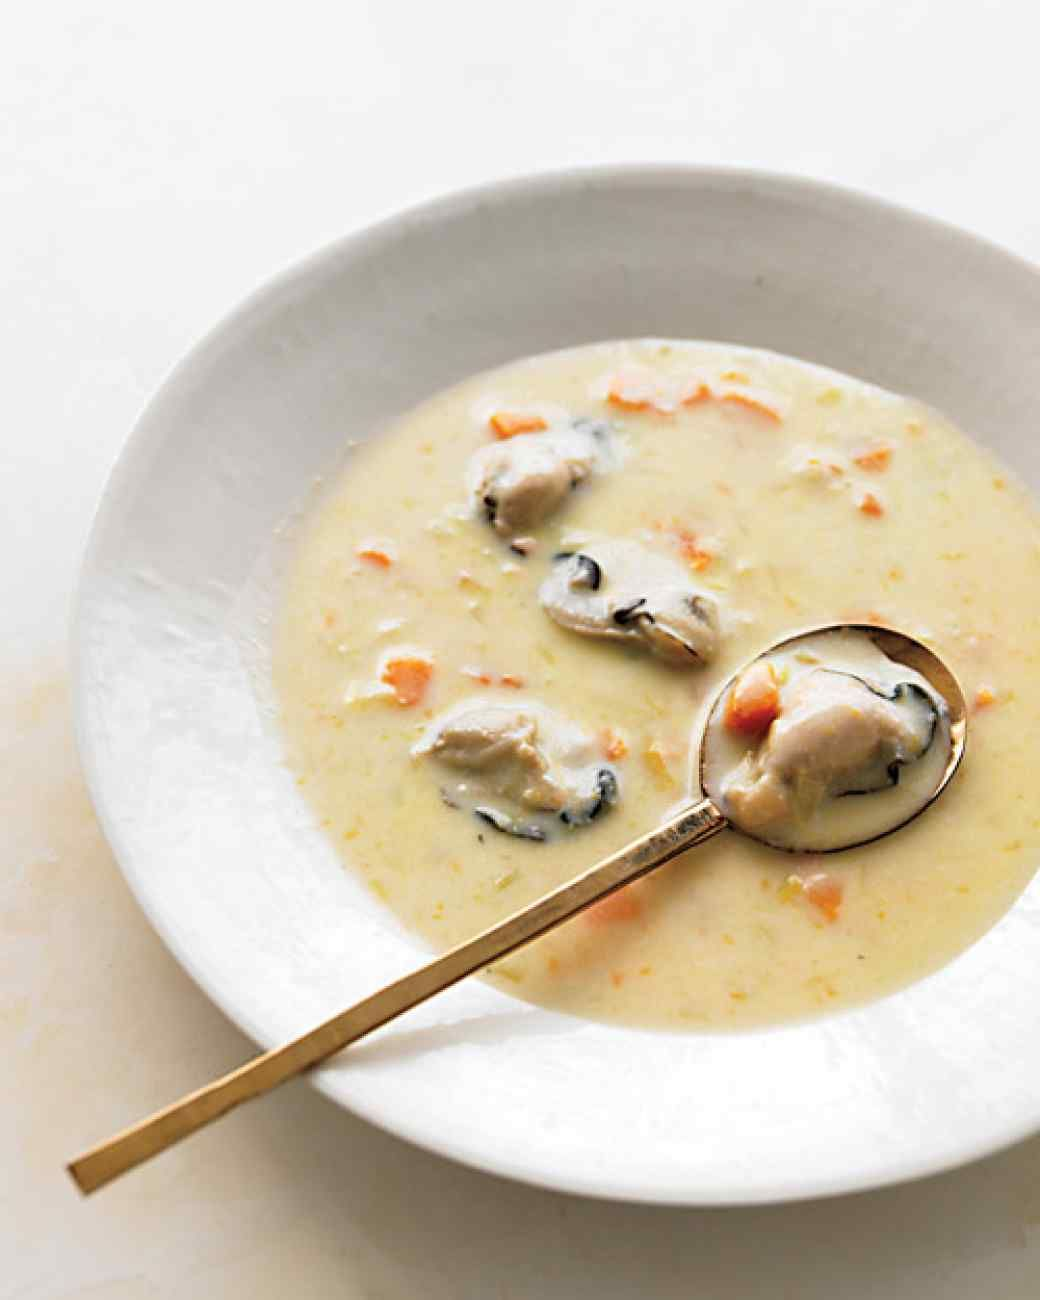 Oyster Stew with Sweet Potato and Leeks